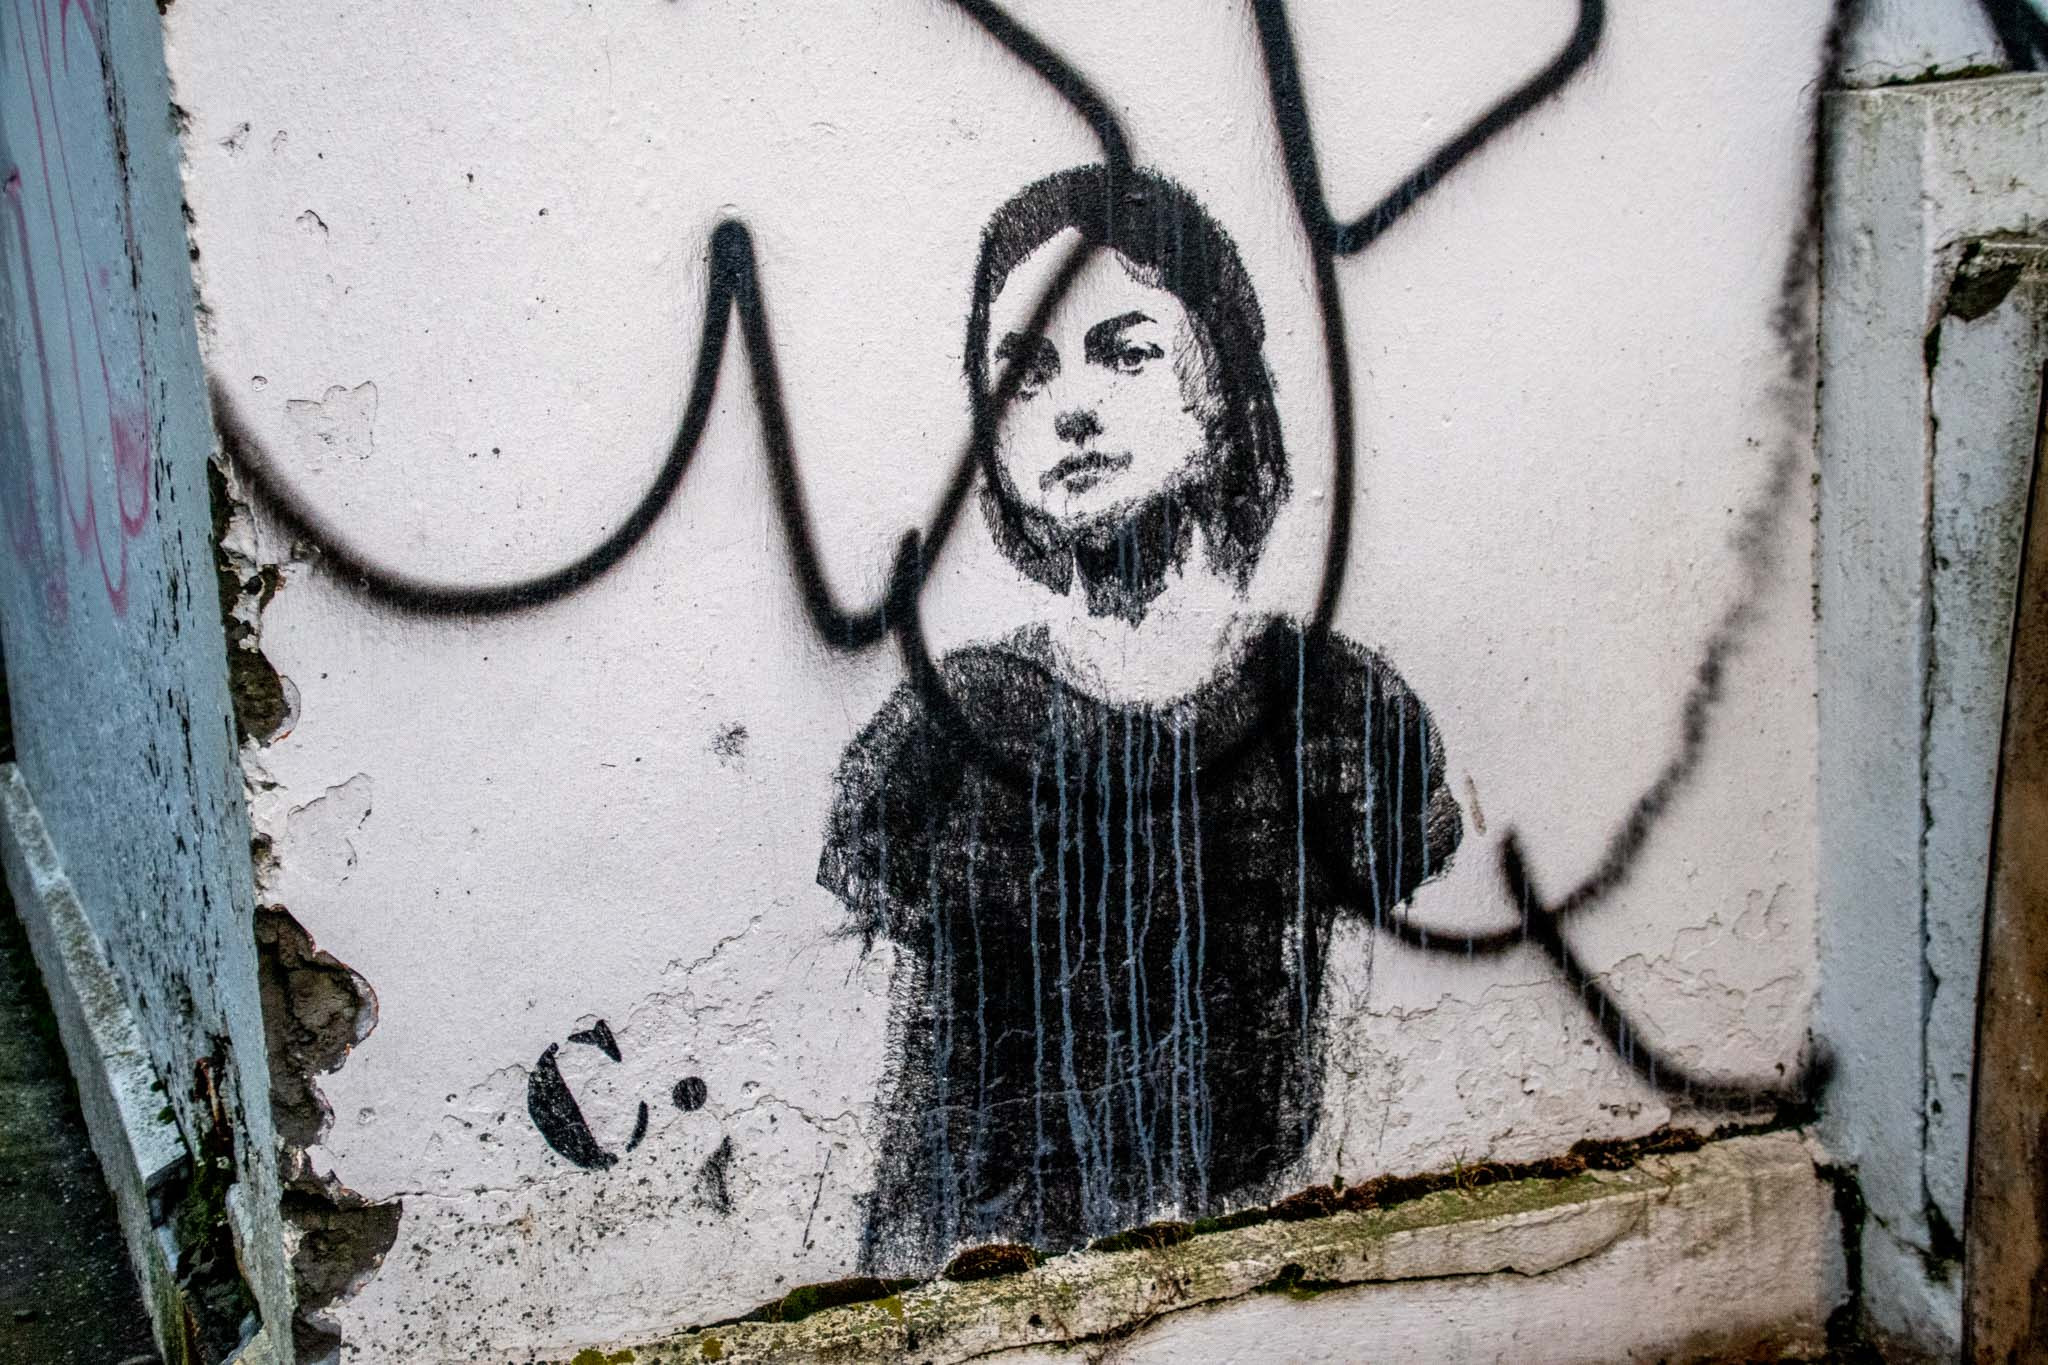 Street art stencil works like this young girl are seen with increasing frequency in the Icelandic capital.